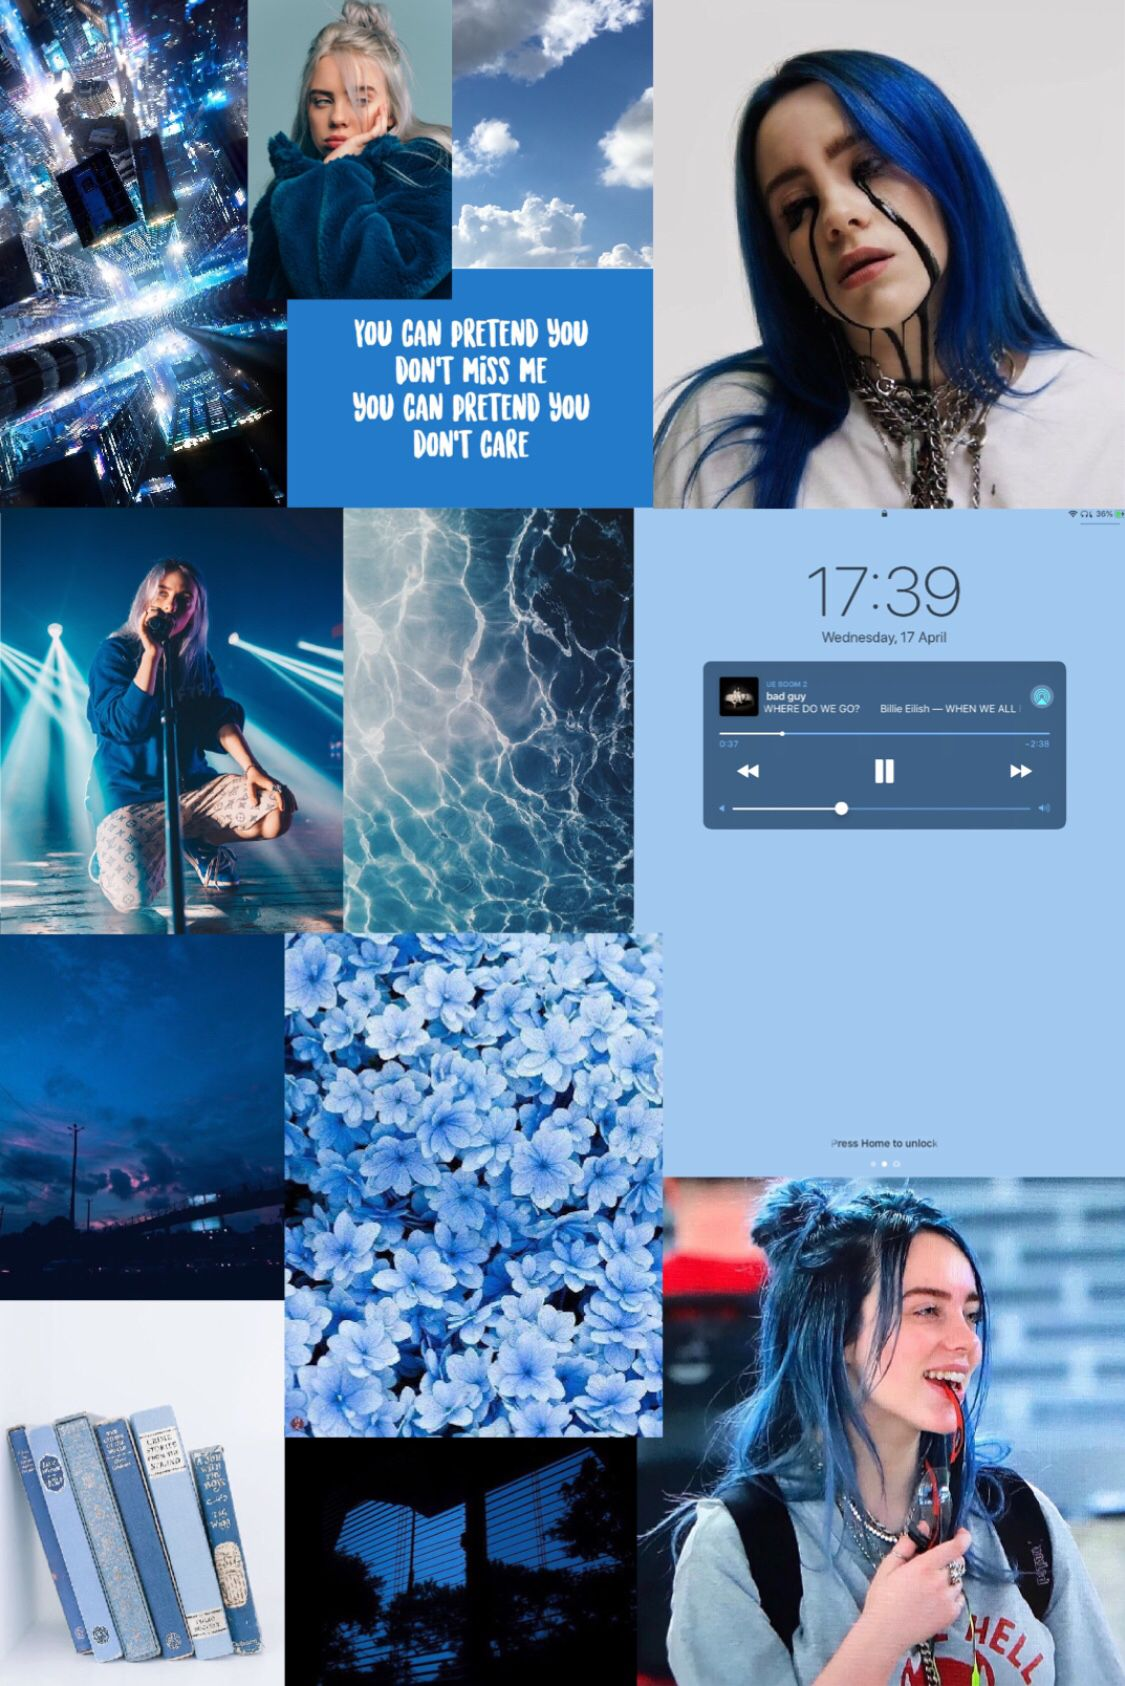 Billie Eilish Wallpaper Black Aesthetic Wallpaper Edgy Wallpaper Blue Wallpaper Iphone